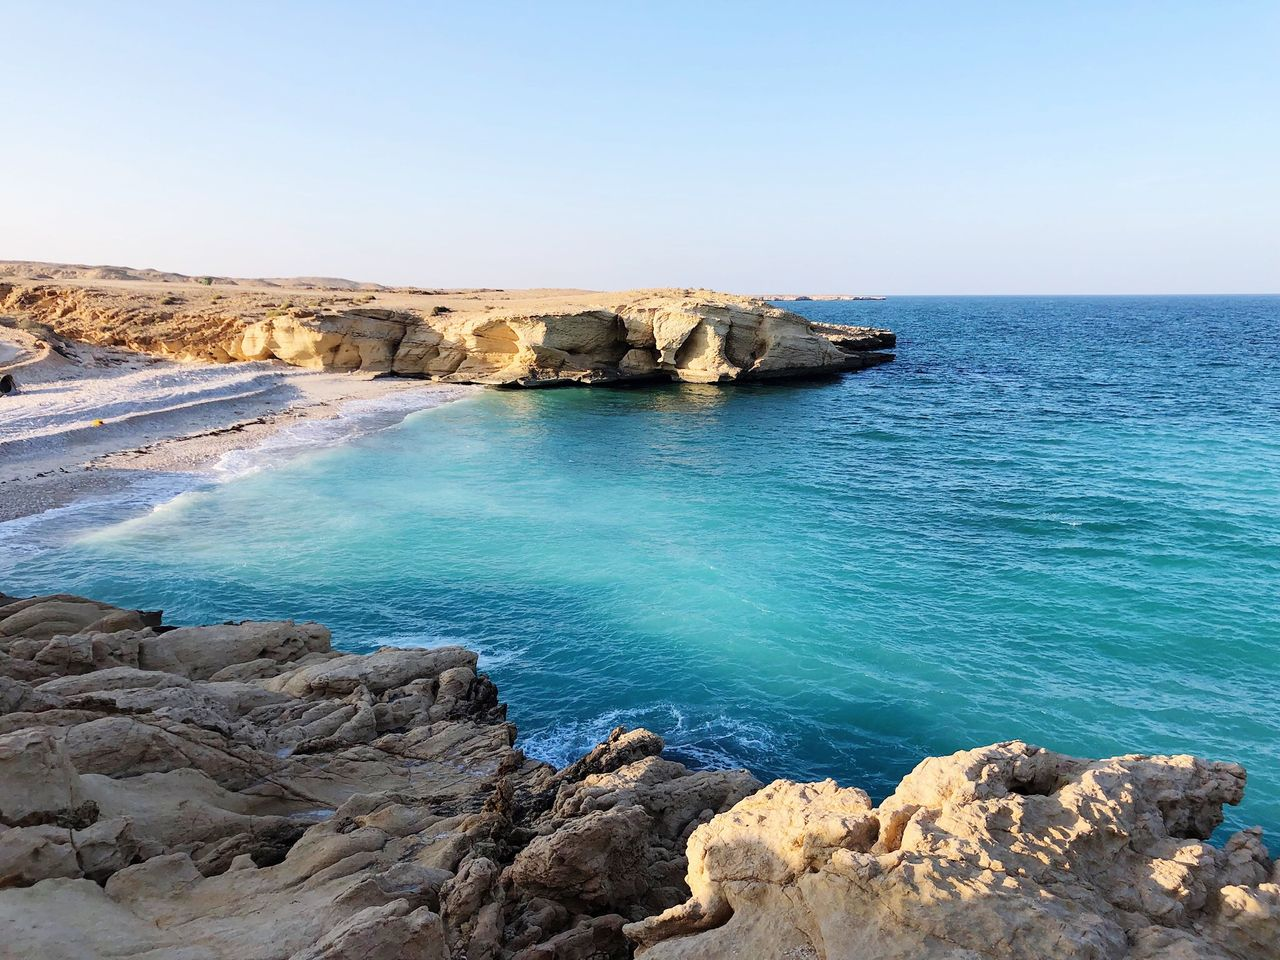 sea, water, rock, rock - object, beauty in nature, scenics - nature, sky, solid, tranquil scene, tranquility, land, rock formation, horizon, clear sky, idyllic, horizon over water, nature, beach, blue, no people, outdoors, rocky coastline, eroded, turquoise colored